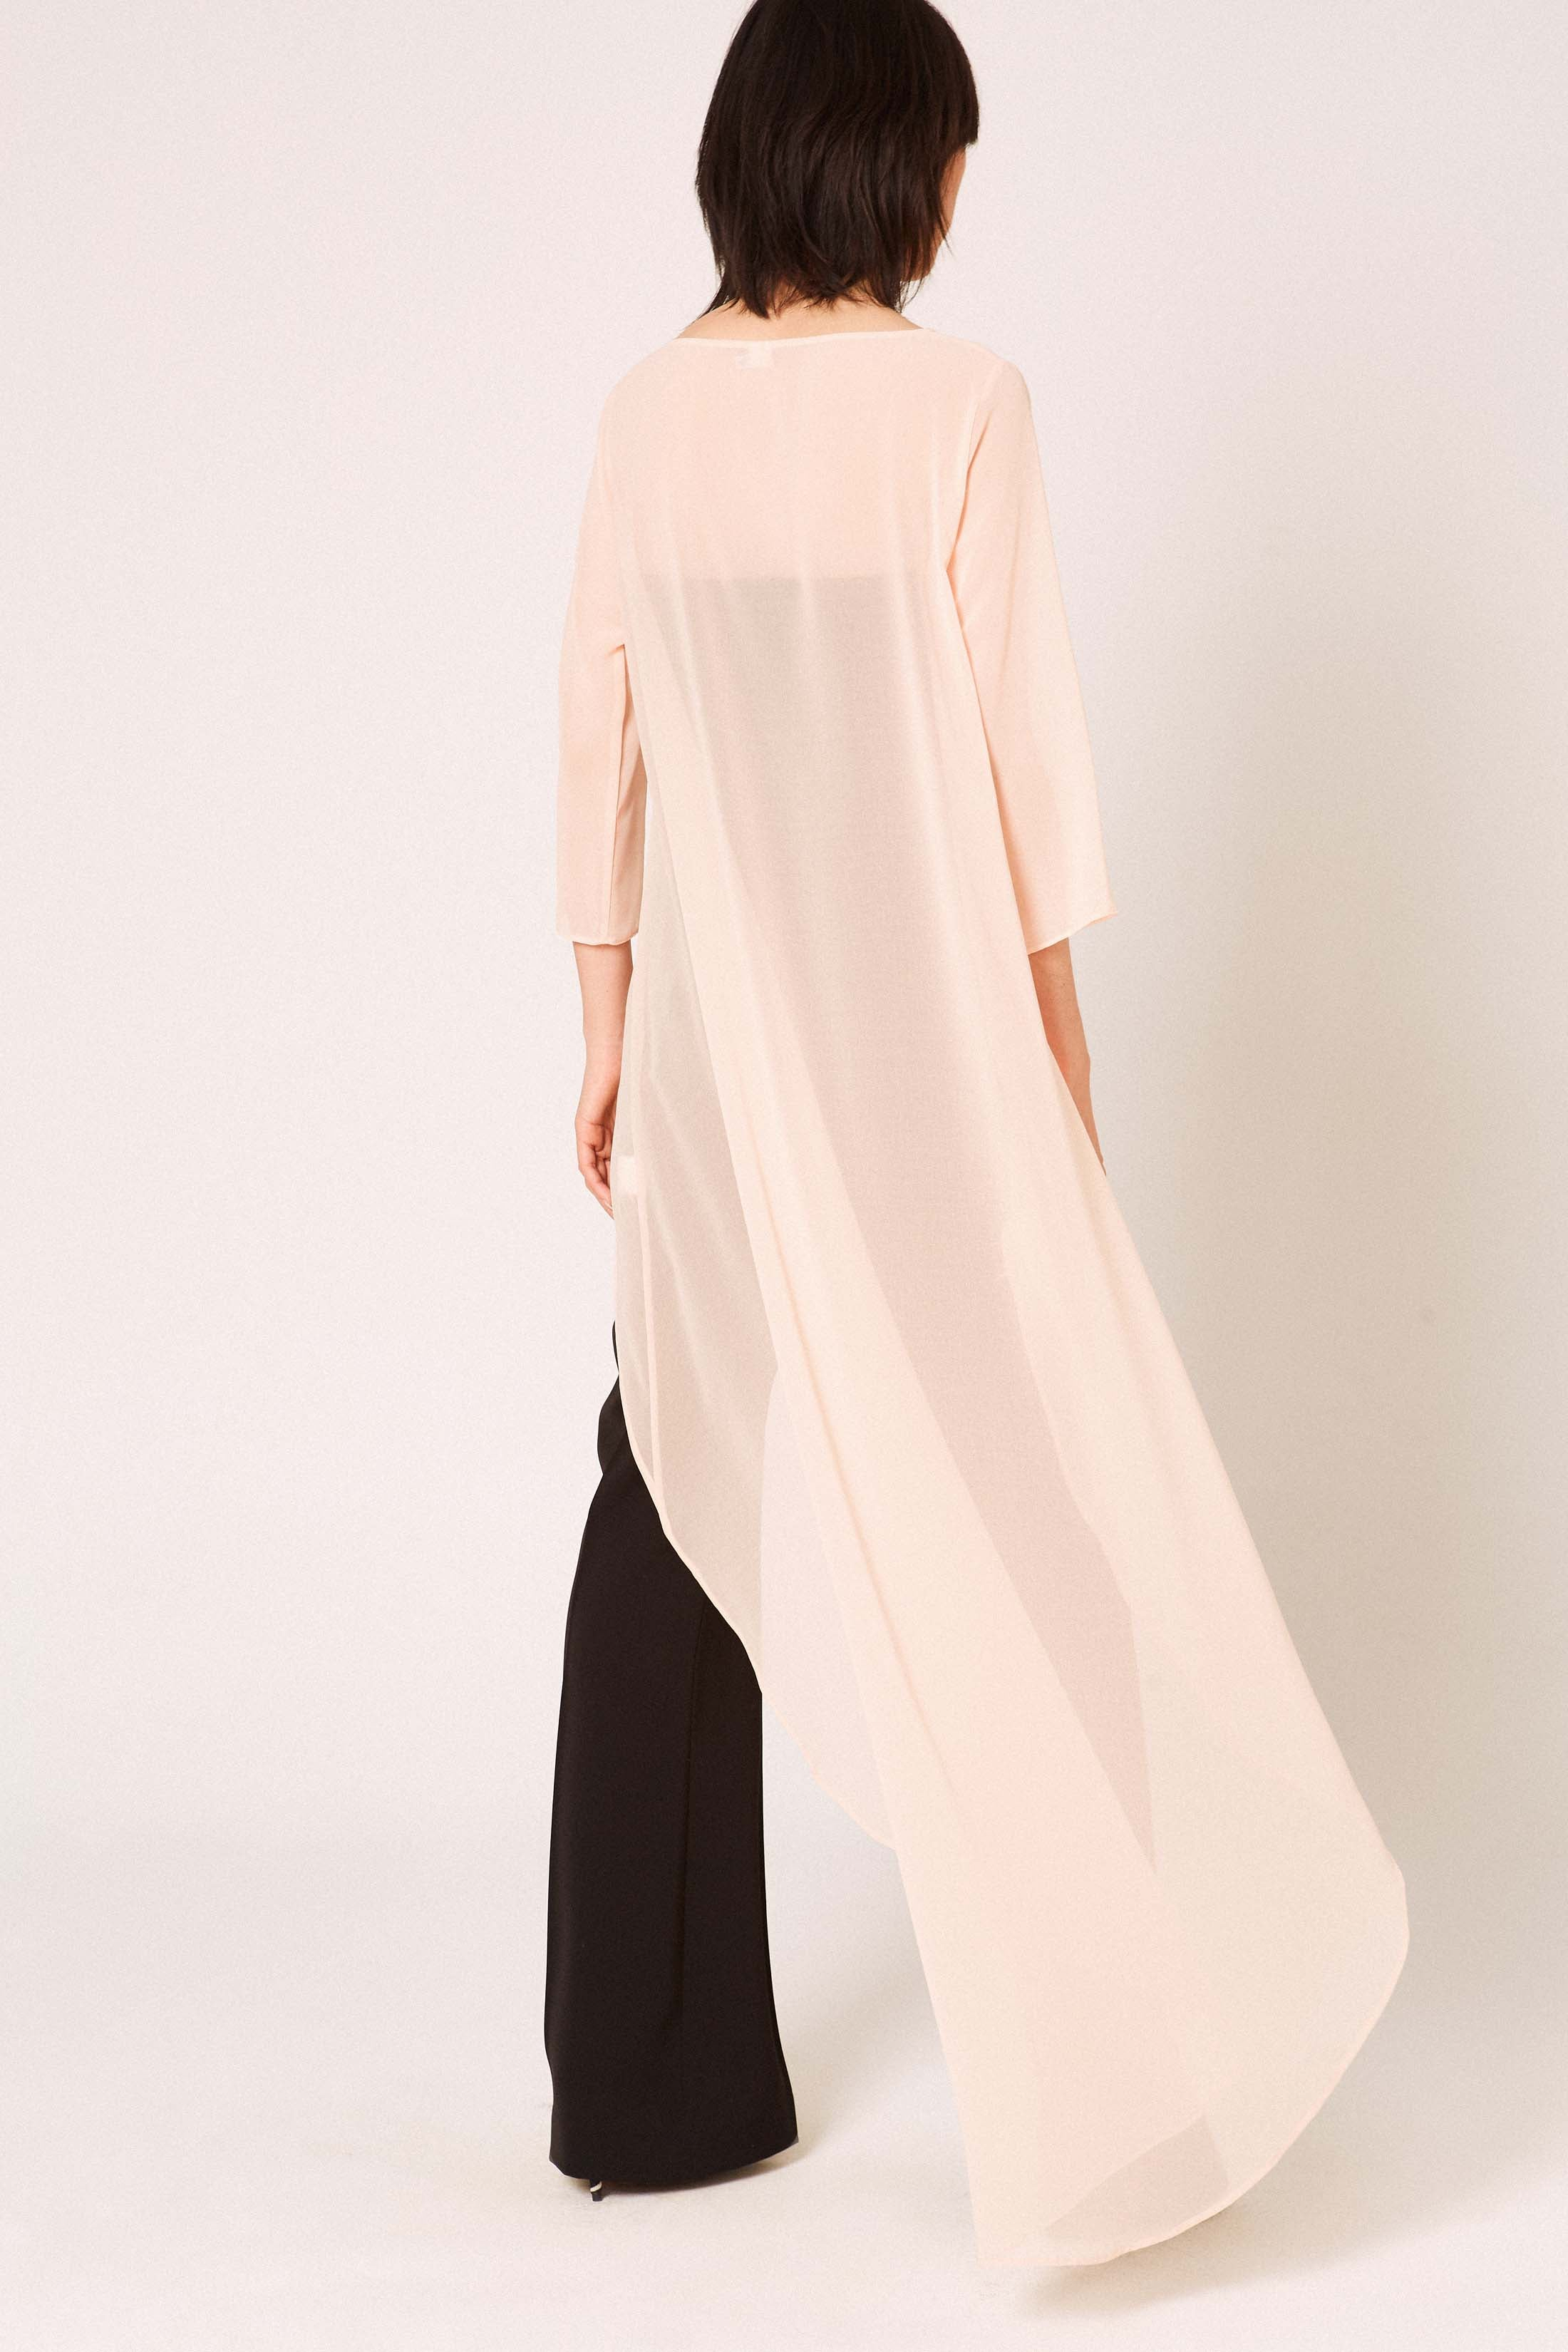 Mare Light Pink Top - Etxart & Panno USA